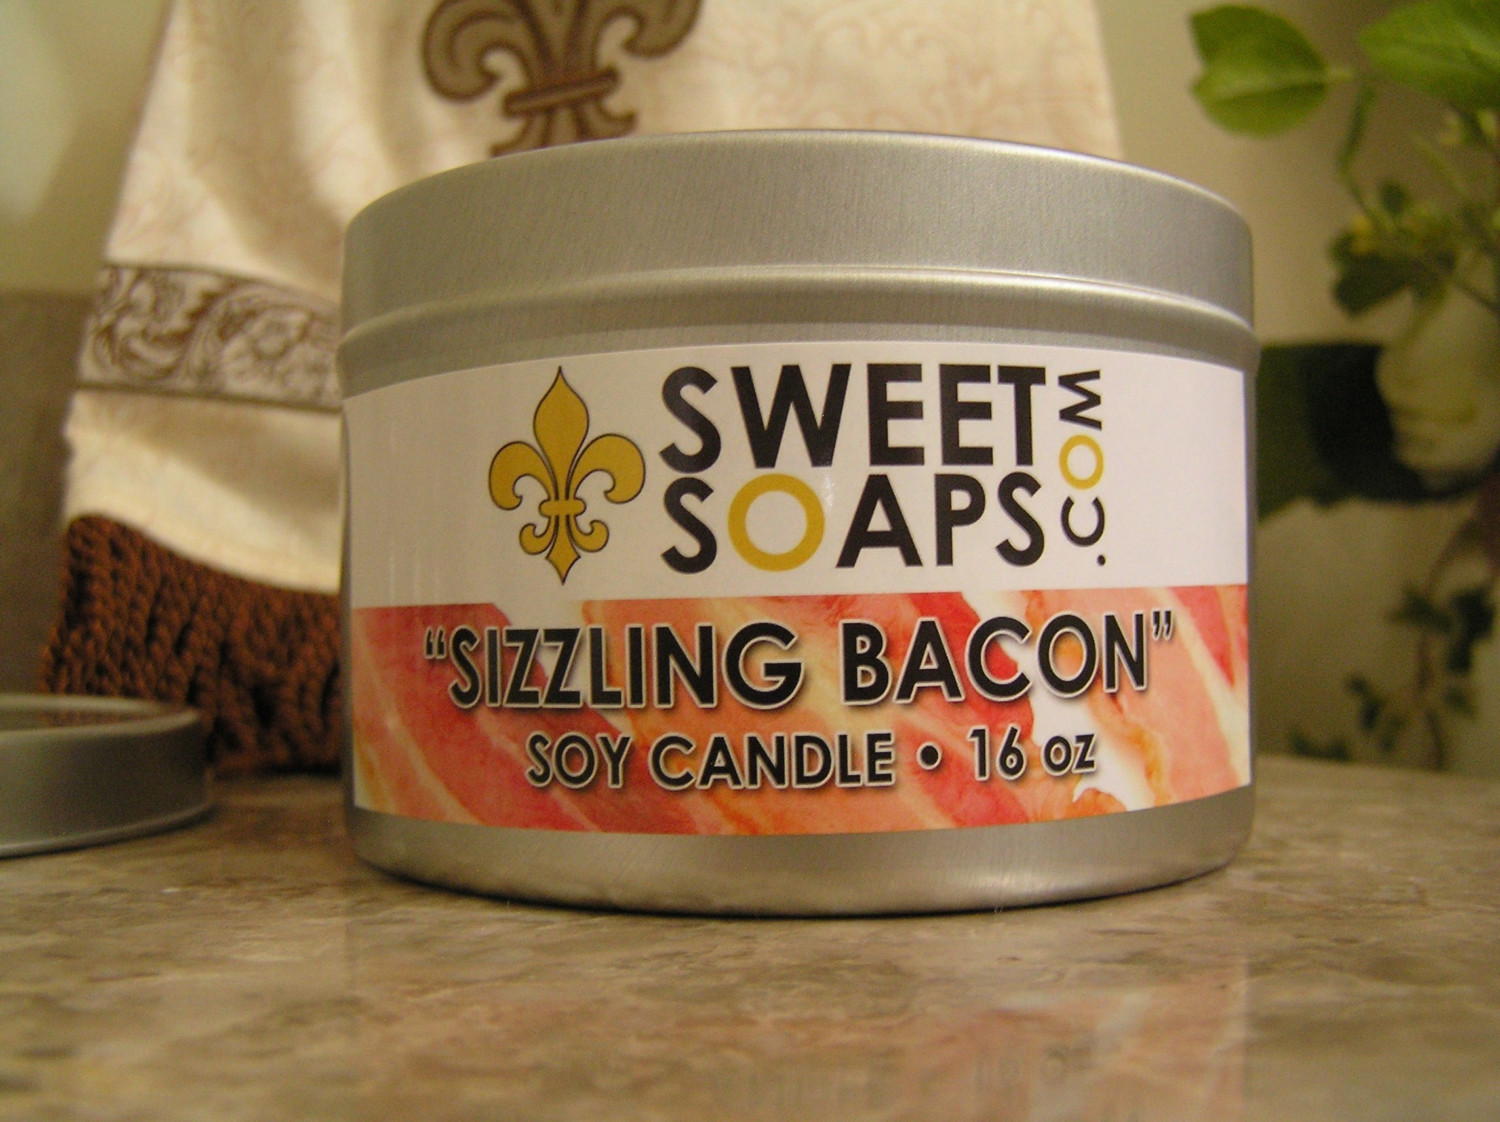 http://images3.wikia.nocookie.net/__cb20110421183613/bacon/images/9/91/Sizzling_bacon_soap.jpeg